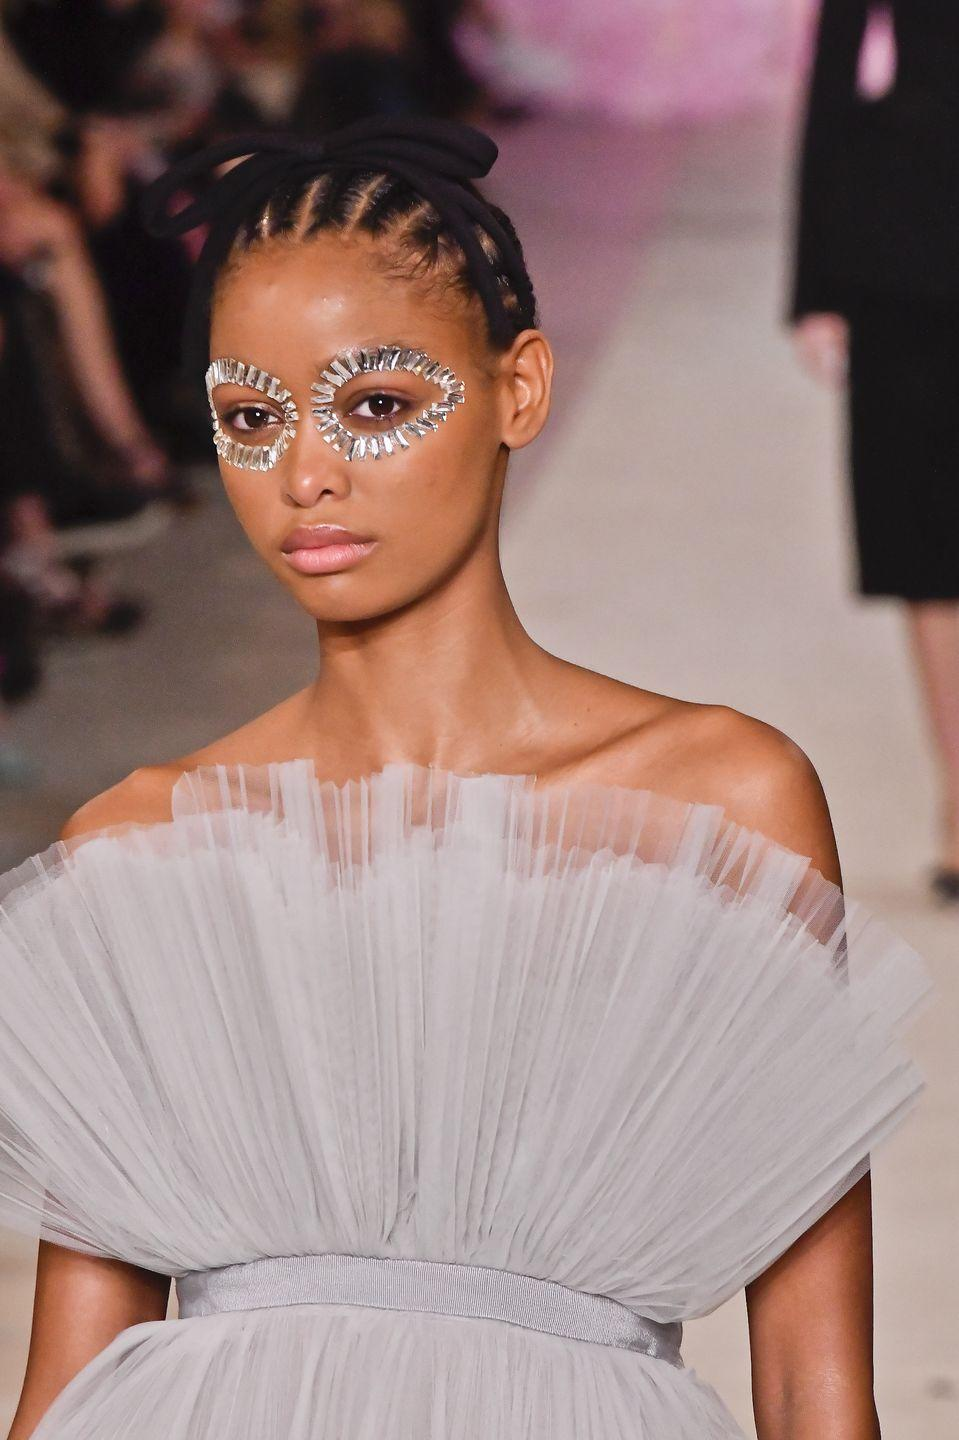 <p>This one might not be for every day. But with all the attention on the eyes at the moment, it's tempting to add on extra sparkle like the bejeweled eyes seen at Giambattista Valli.</p>